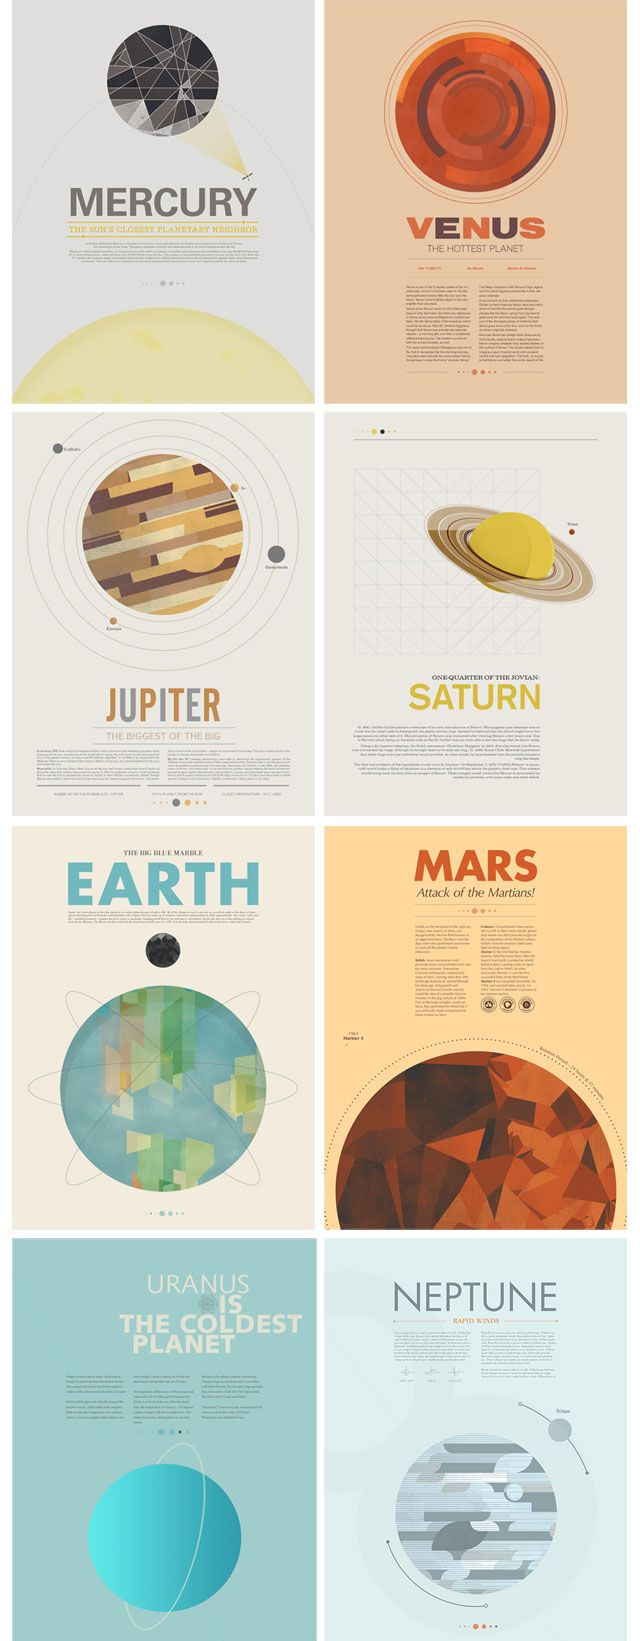 Poster design pinterest - Beyond Earth A Minimal Poster Series By Stephen Di Donato